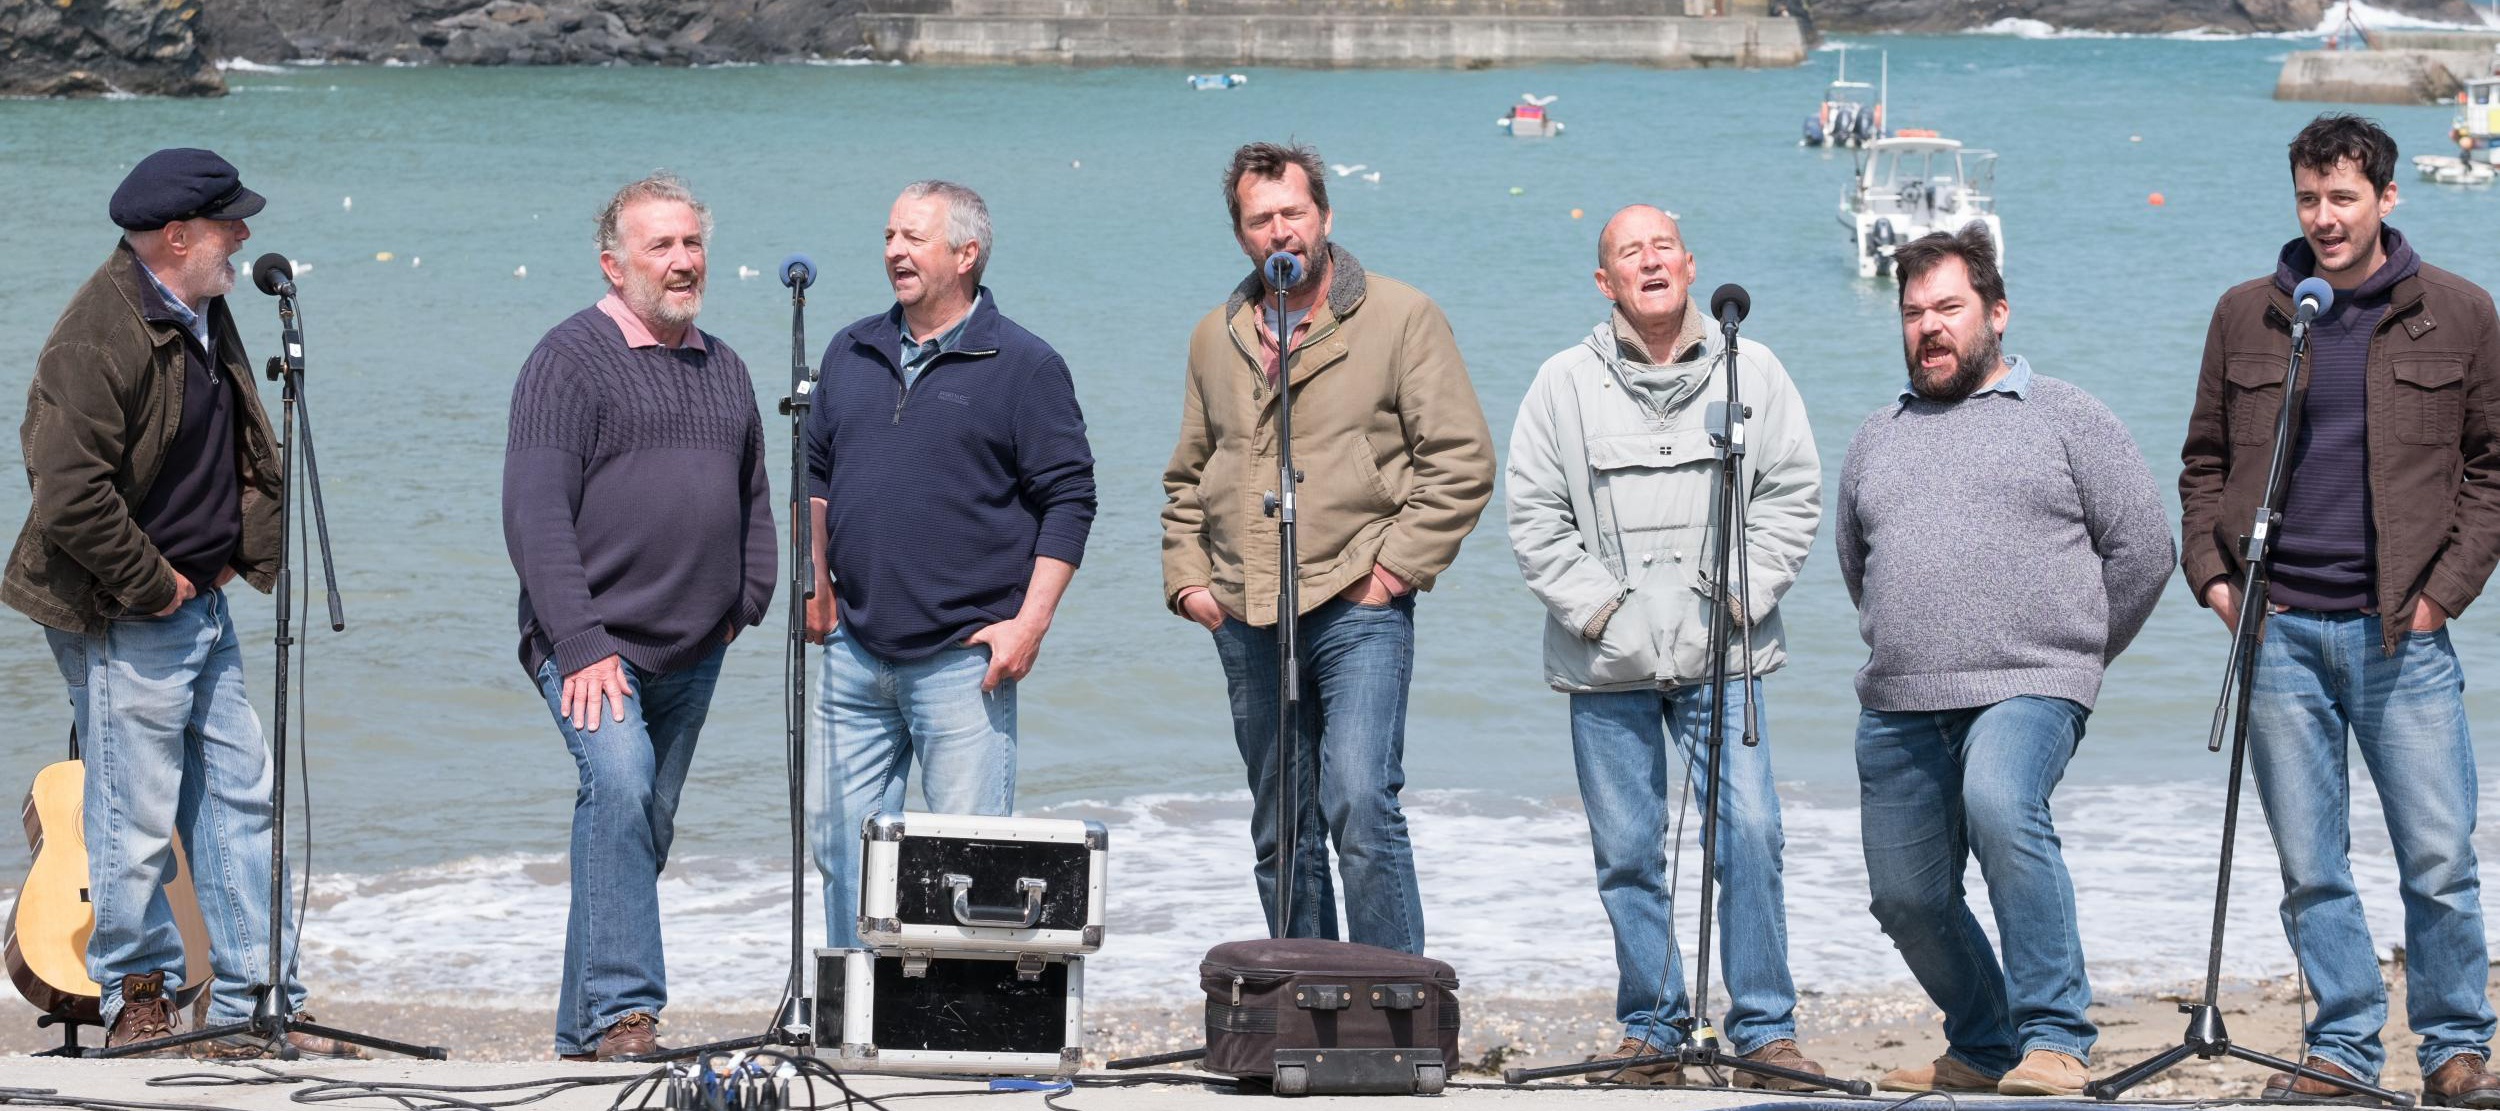 Film-Tipp: Fisherman's Friends – Vom Kutter in die Charts